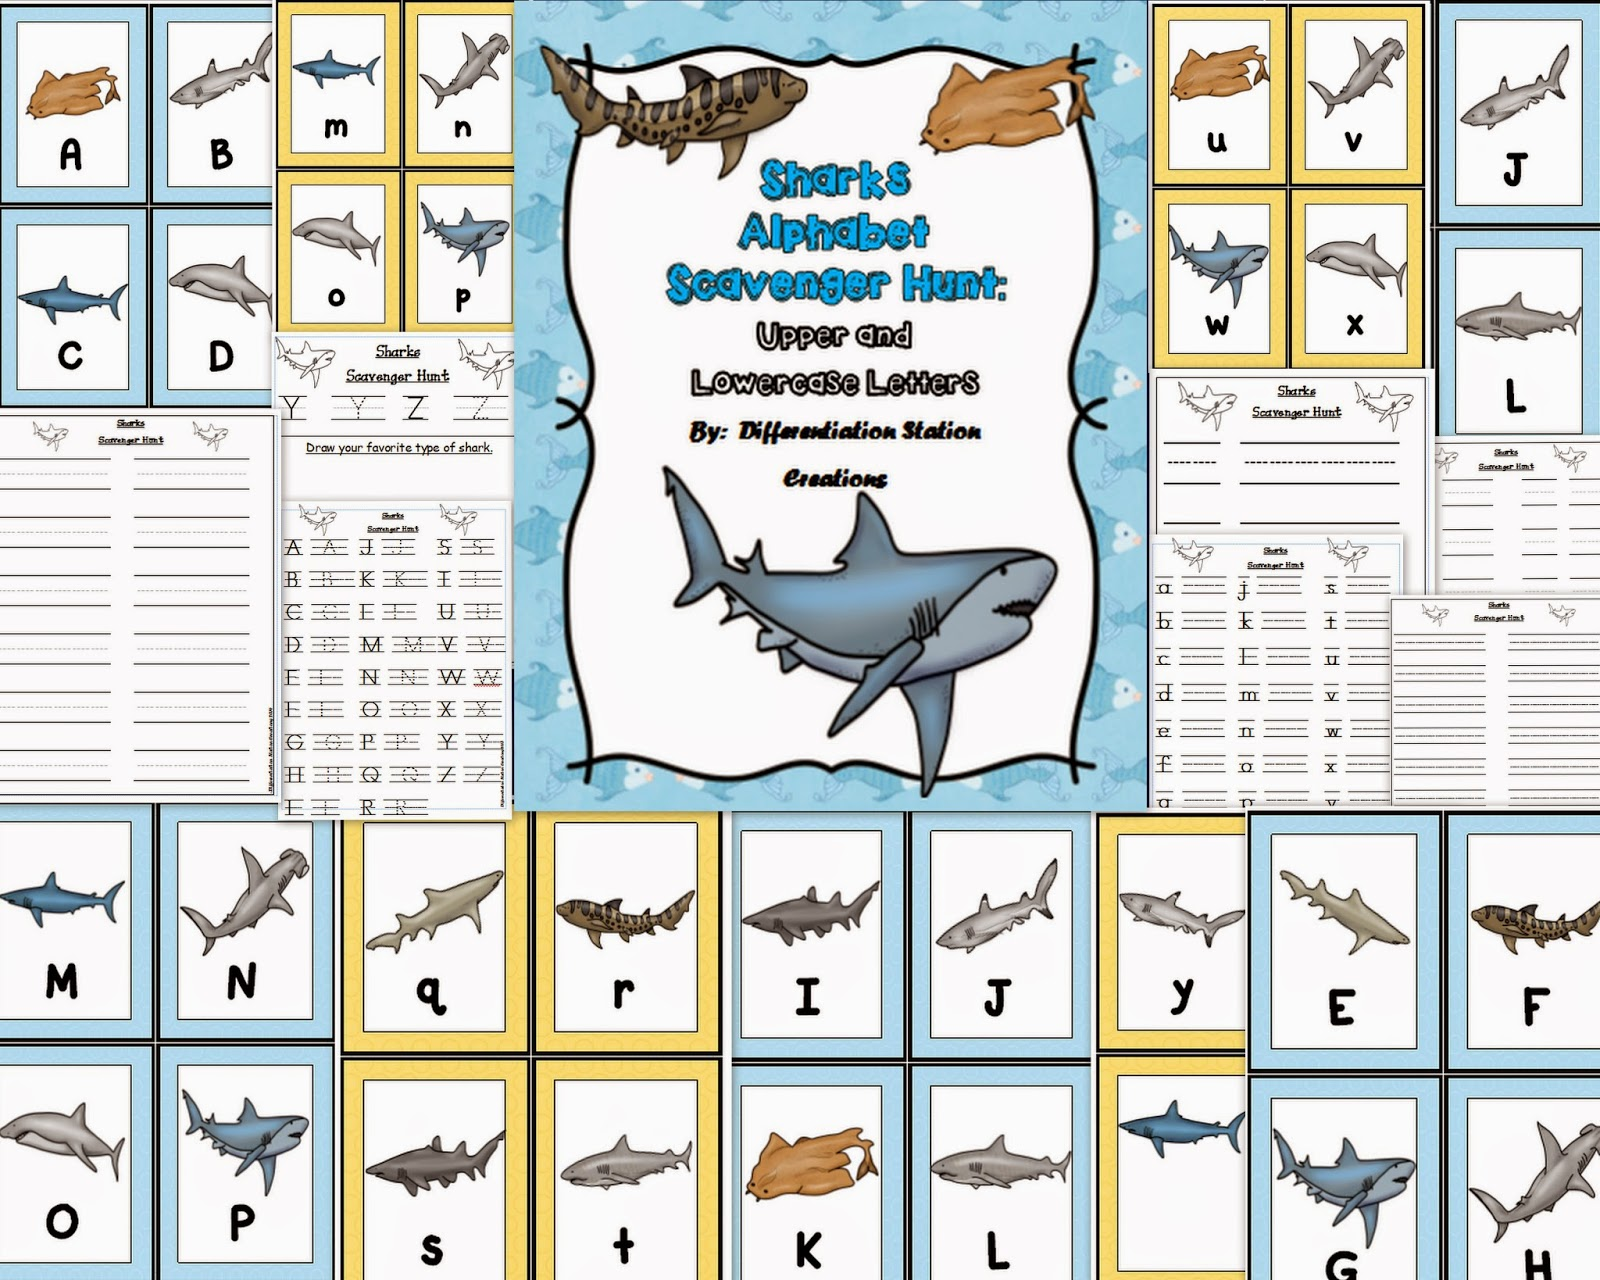 http://www.teacherspayteachers.com/Product/Sharks-Alphabet-Scavenger-Hunt-Upper-and-Lowercase-Letters-Center-Printables-1089061